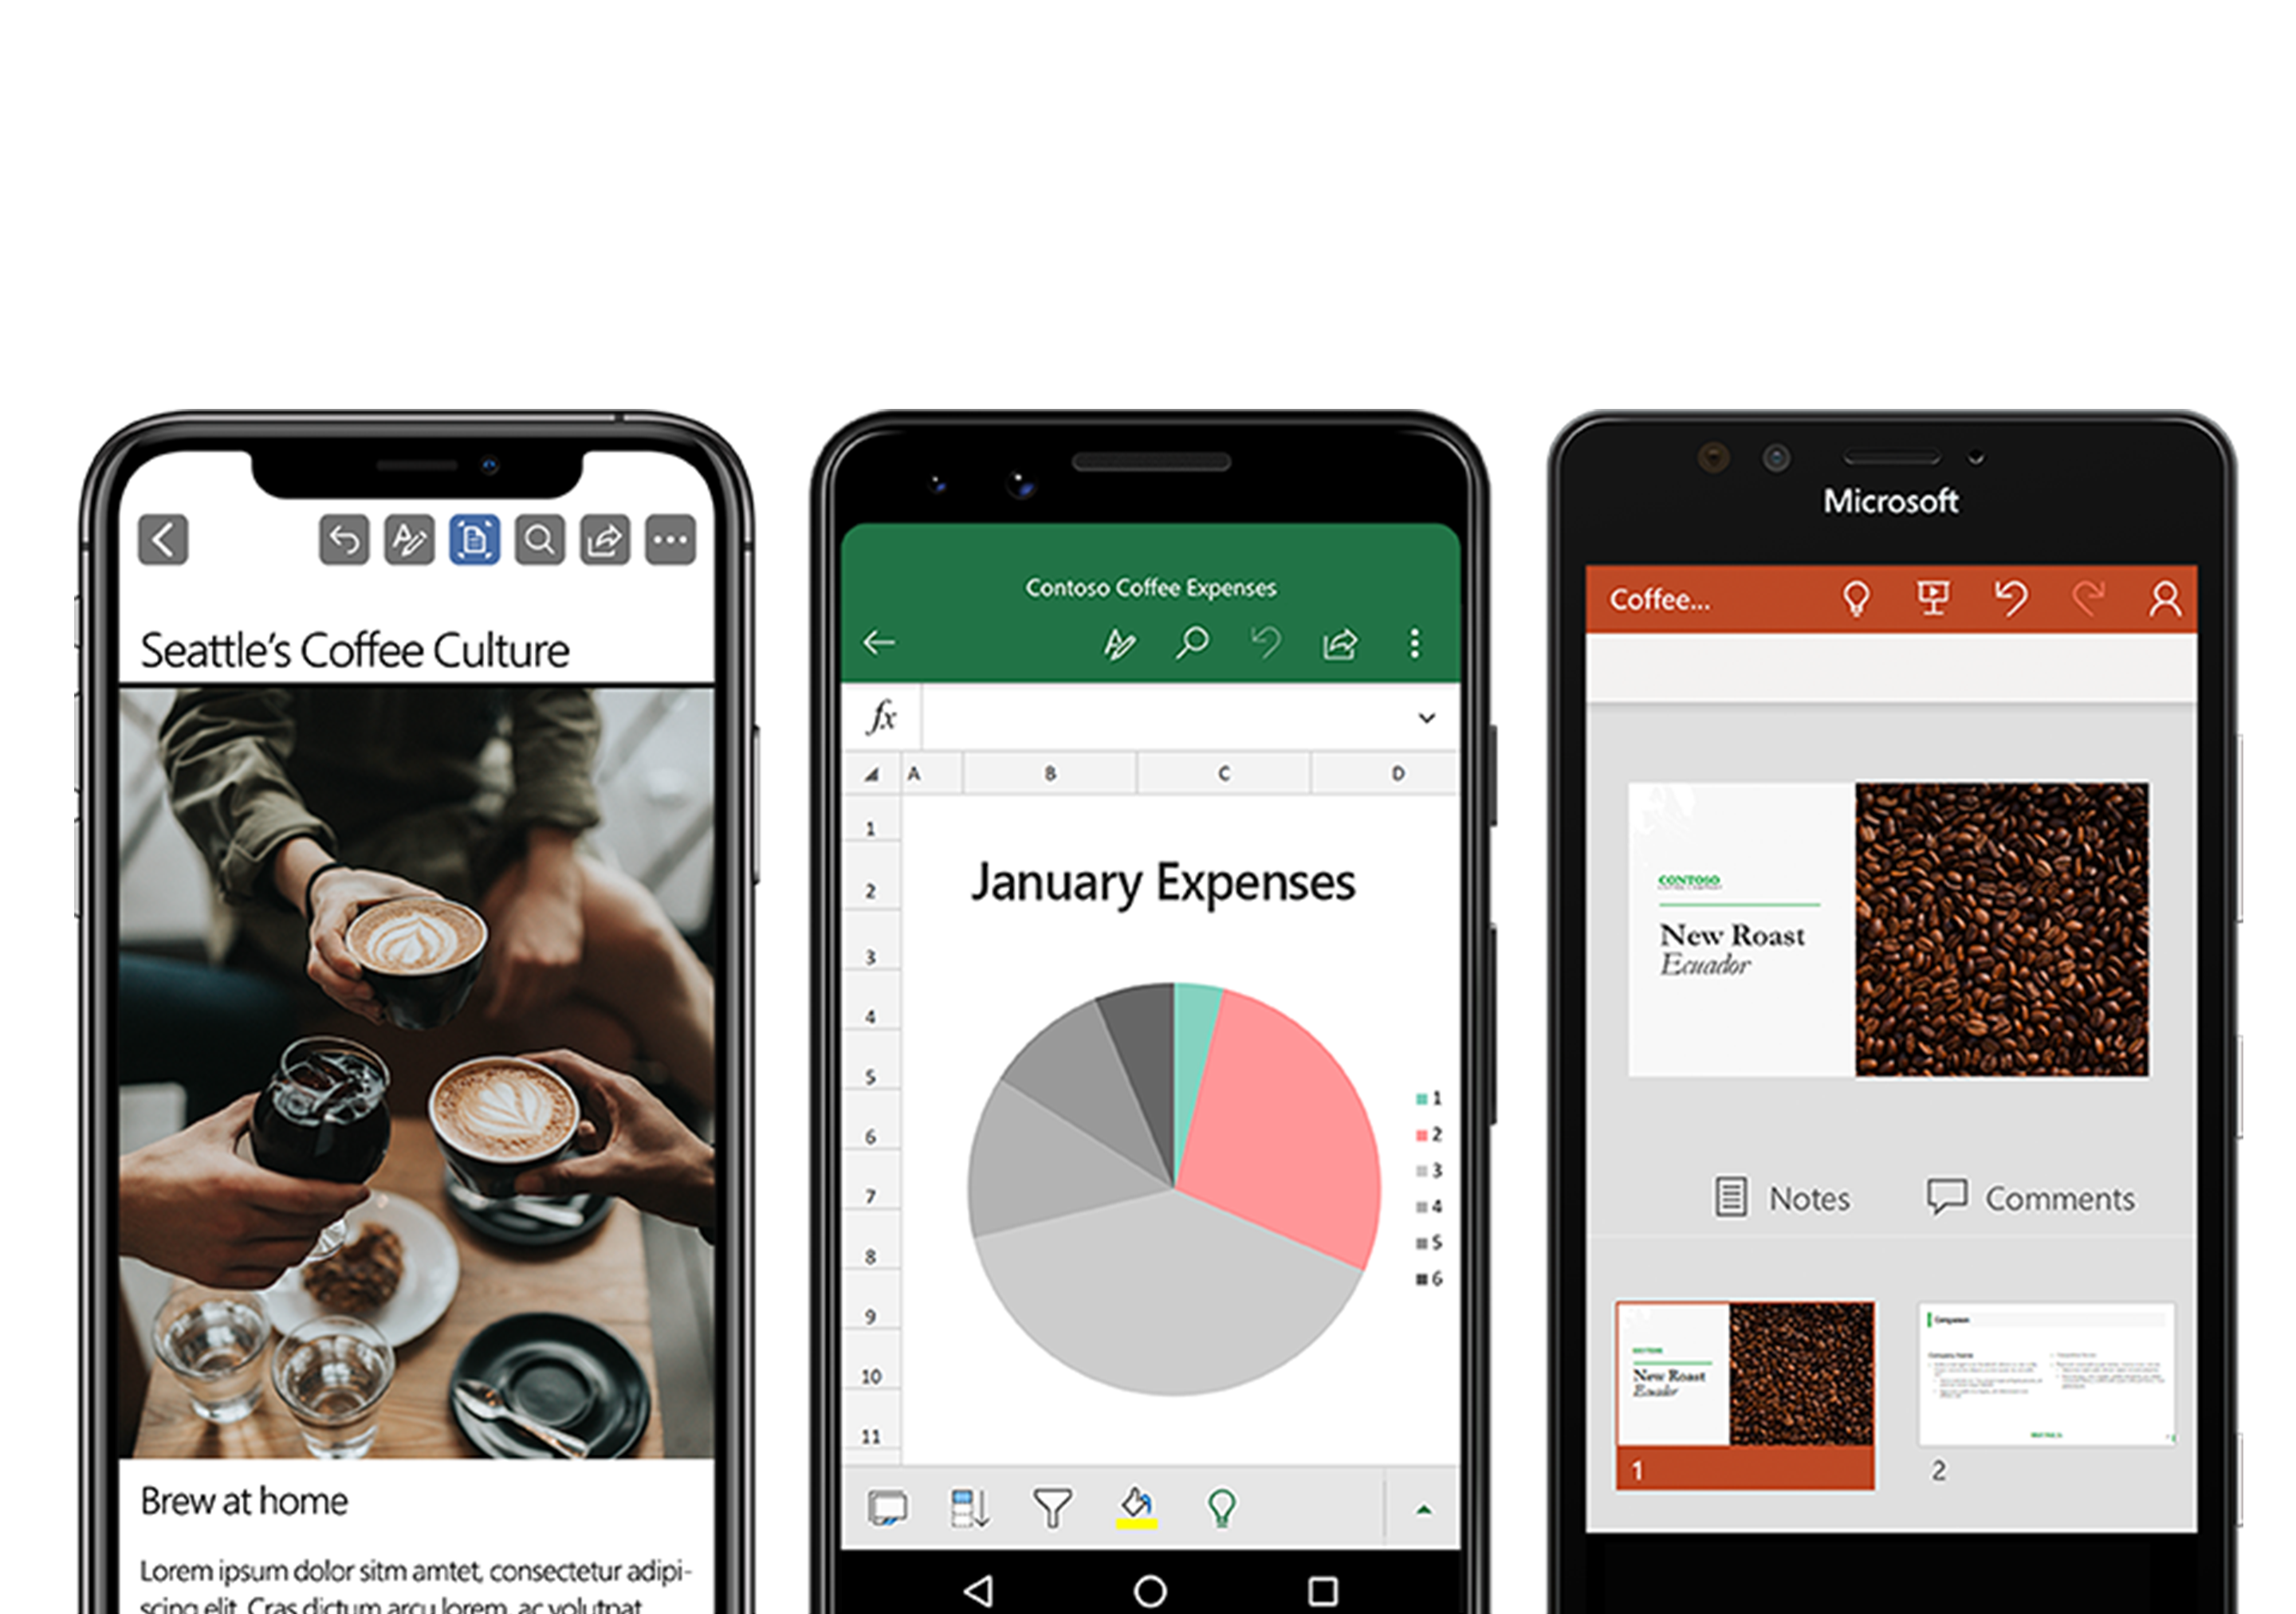 Get Office productivity apps